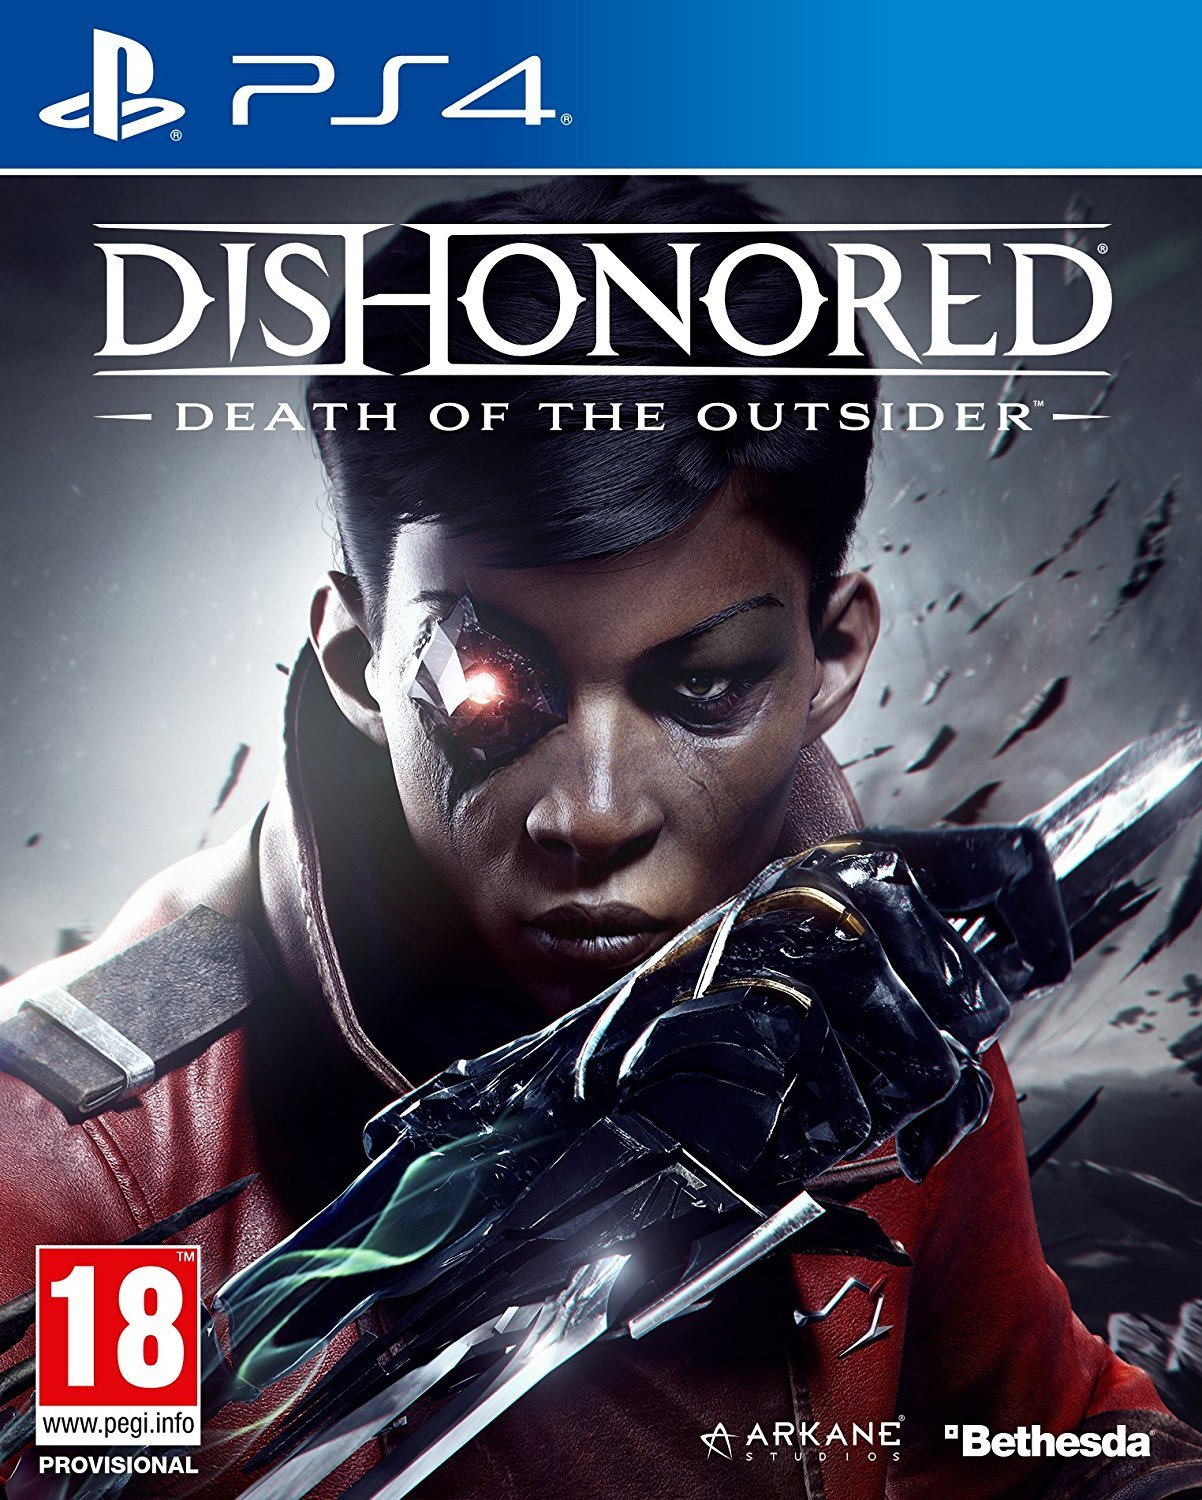 Dishonored: Death of the Outsider for PS4 image